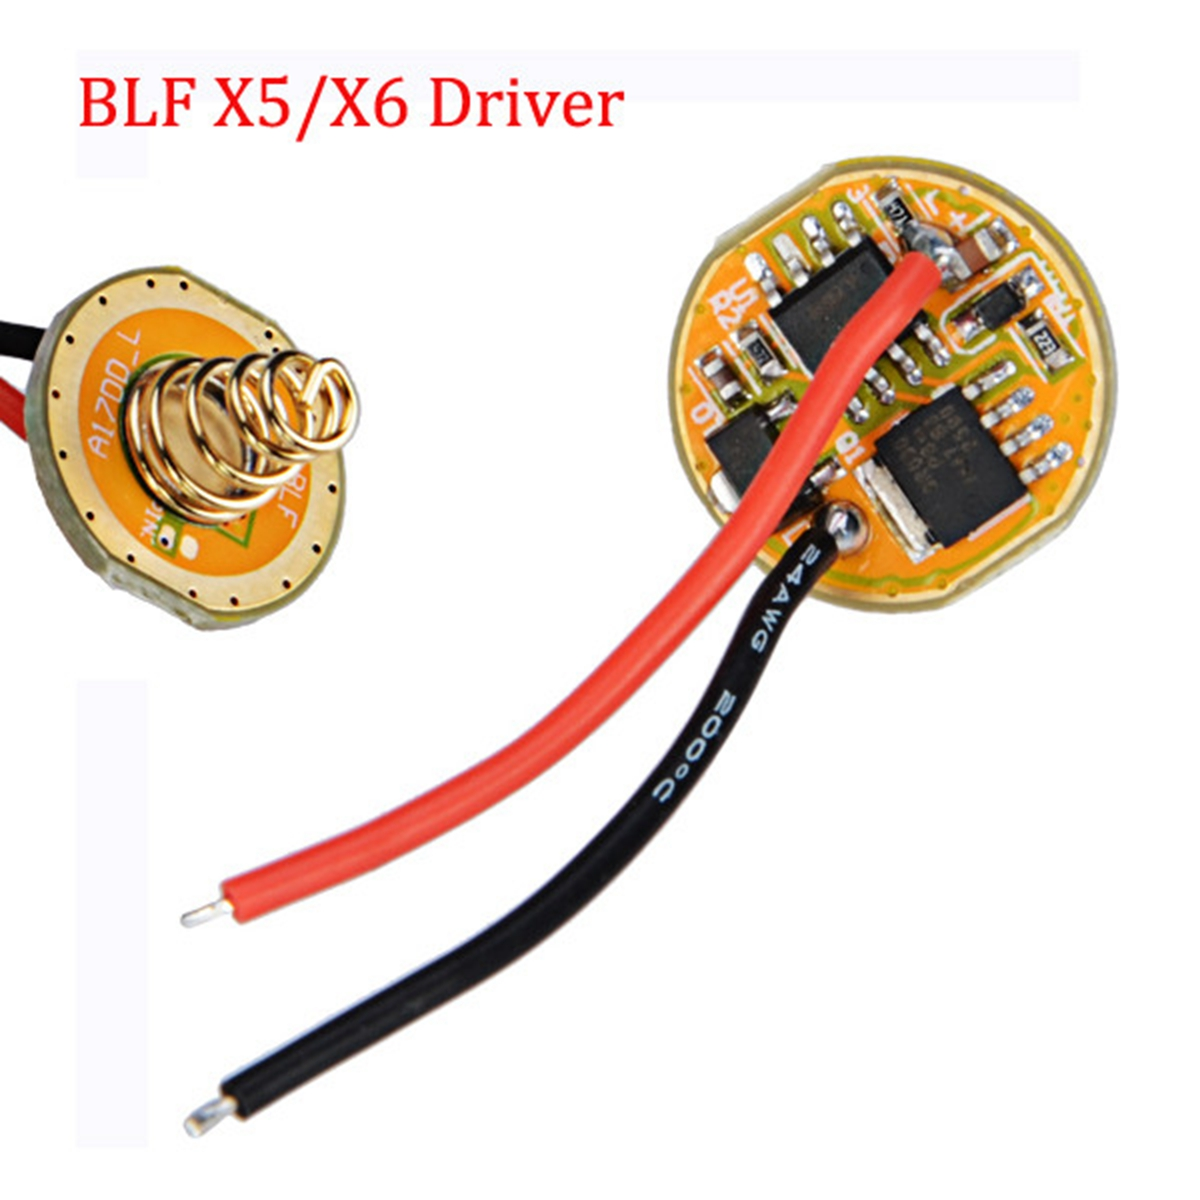 For Blf X6 X5 S2 S3 Ss Sc Flashlight Driver Attiny25v Based And Fet Attiny Candle Electronicslab Getsubject Aeproduct